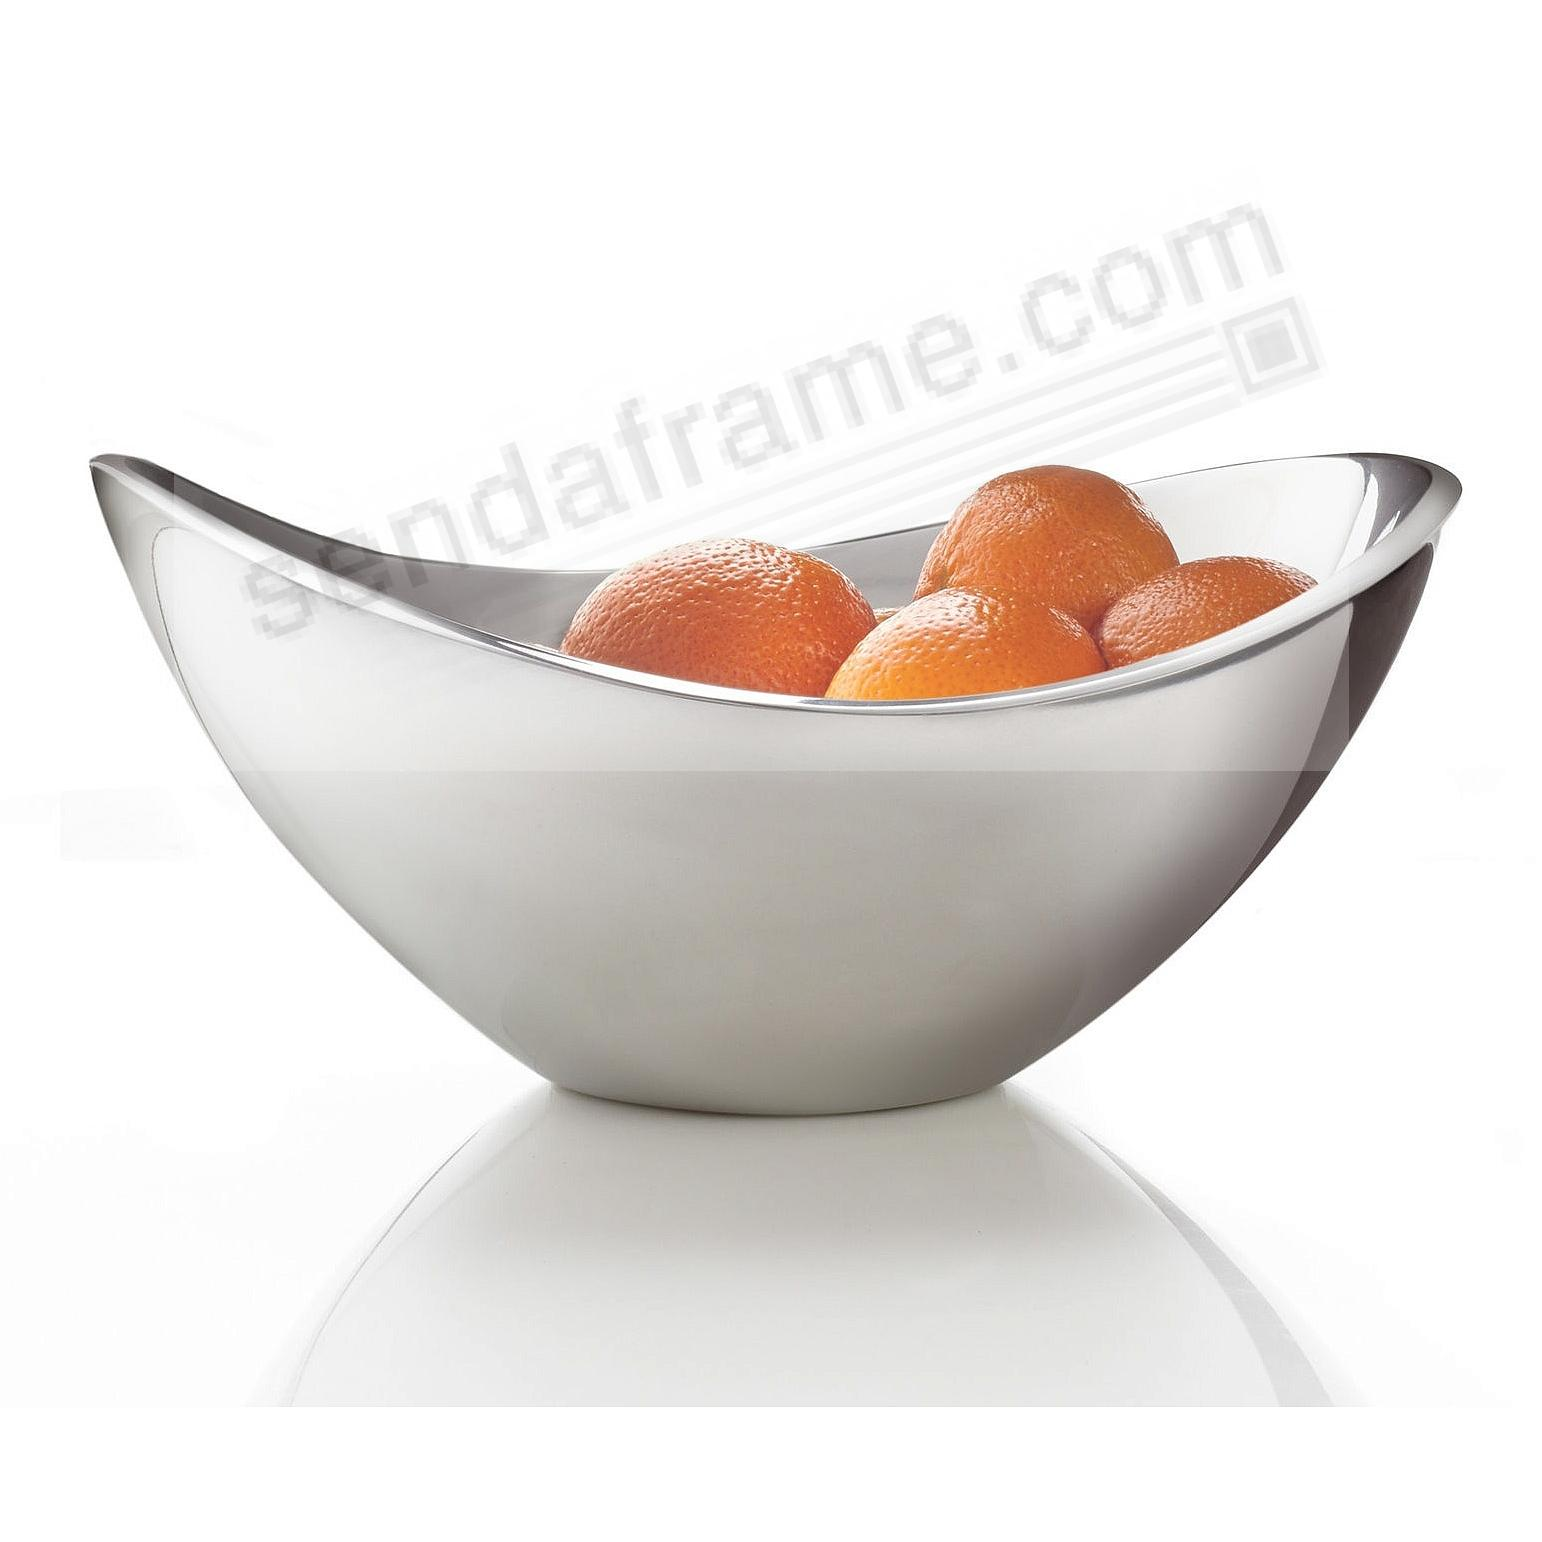 The Original BUTTERFLY 6½-inch BOWL crafted by Nambe®